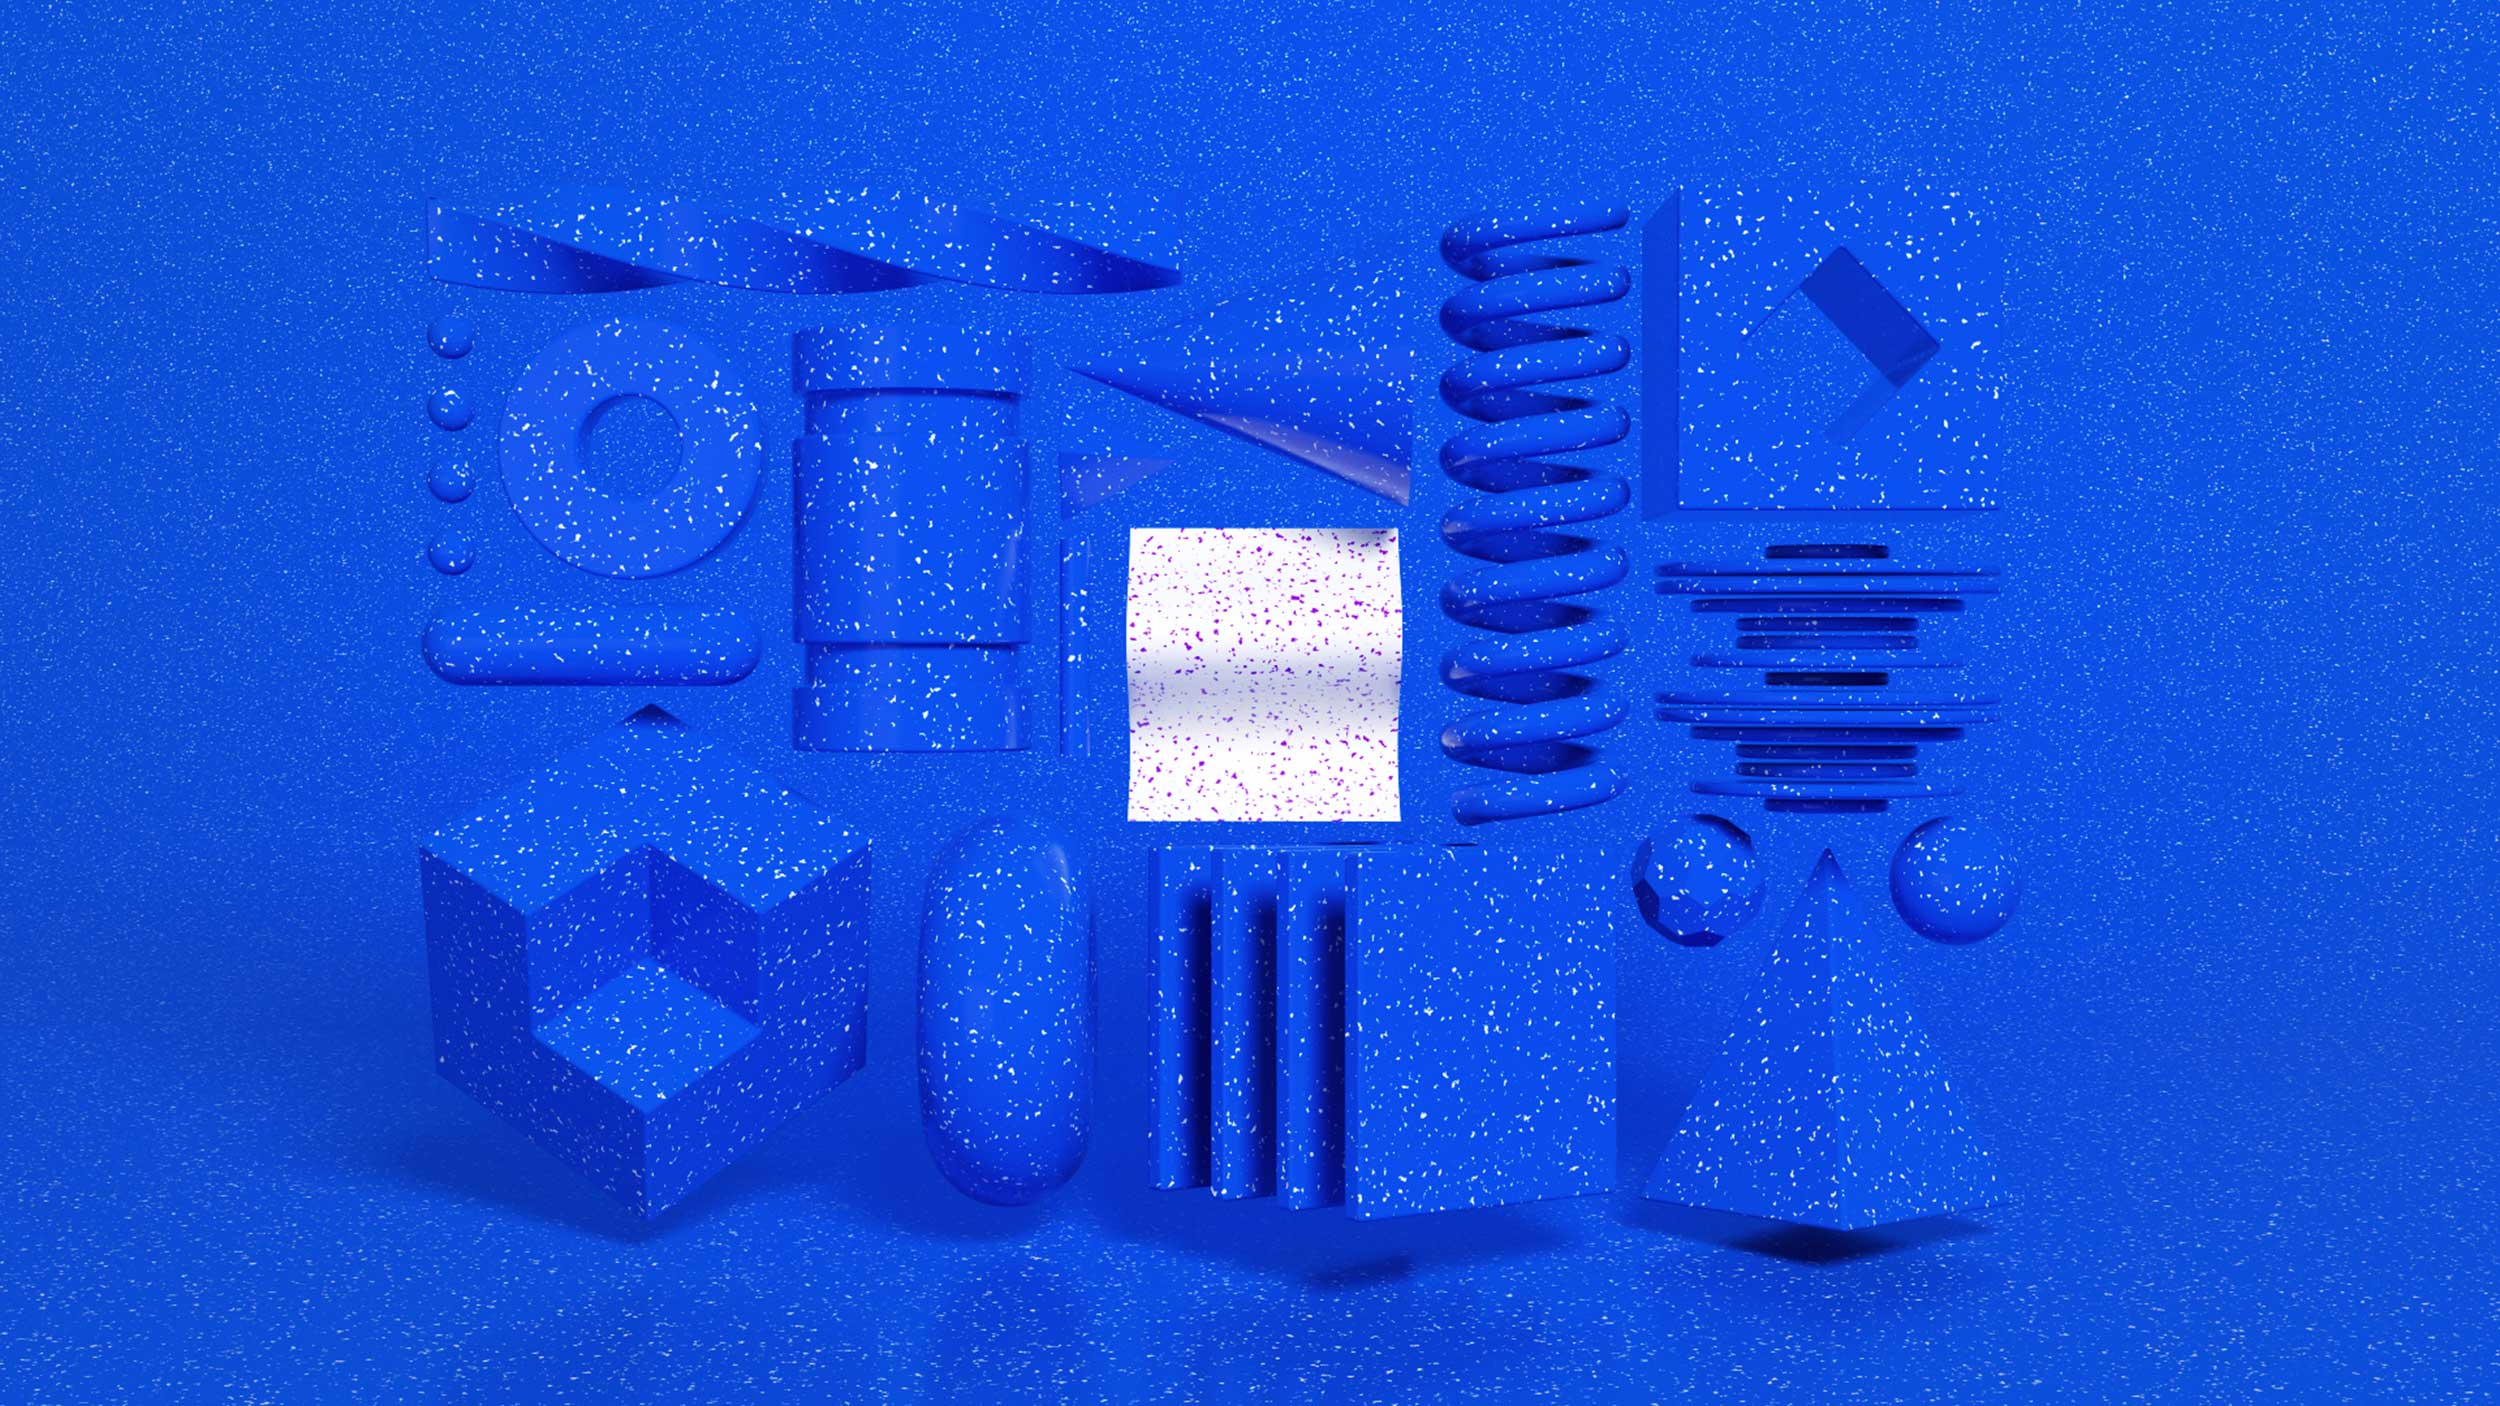 cgi-product-Blue-pixie-dust-geometric-shapes--Nico Castro